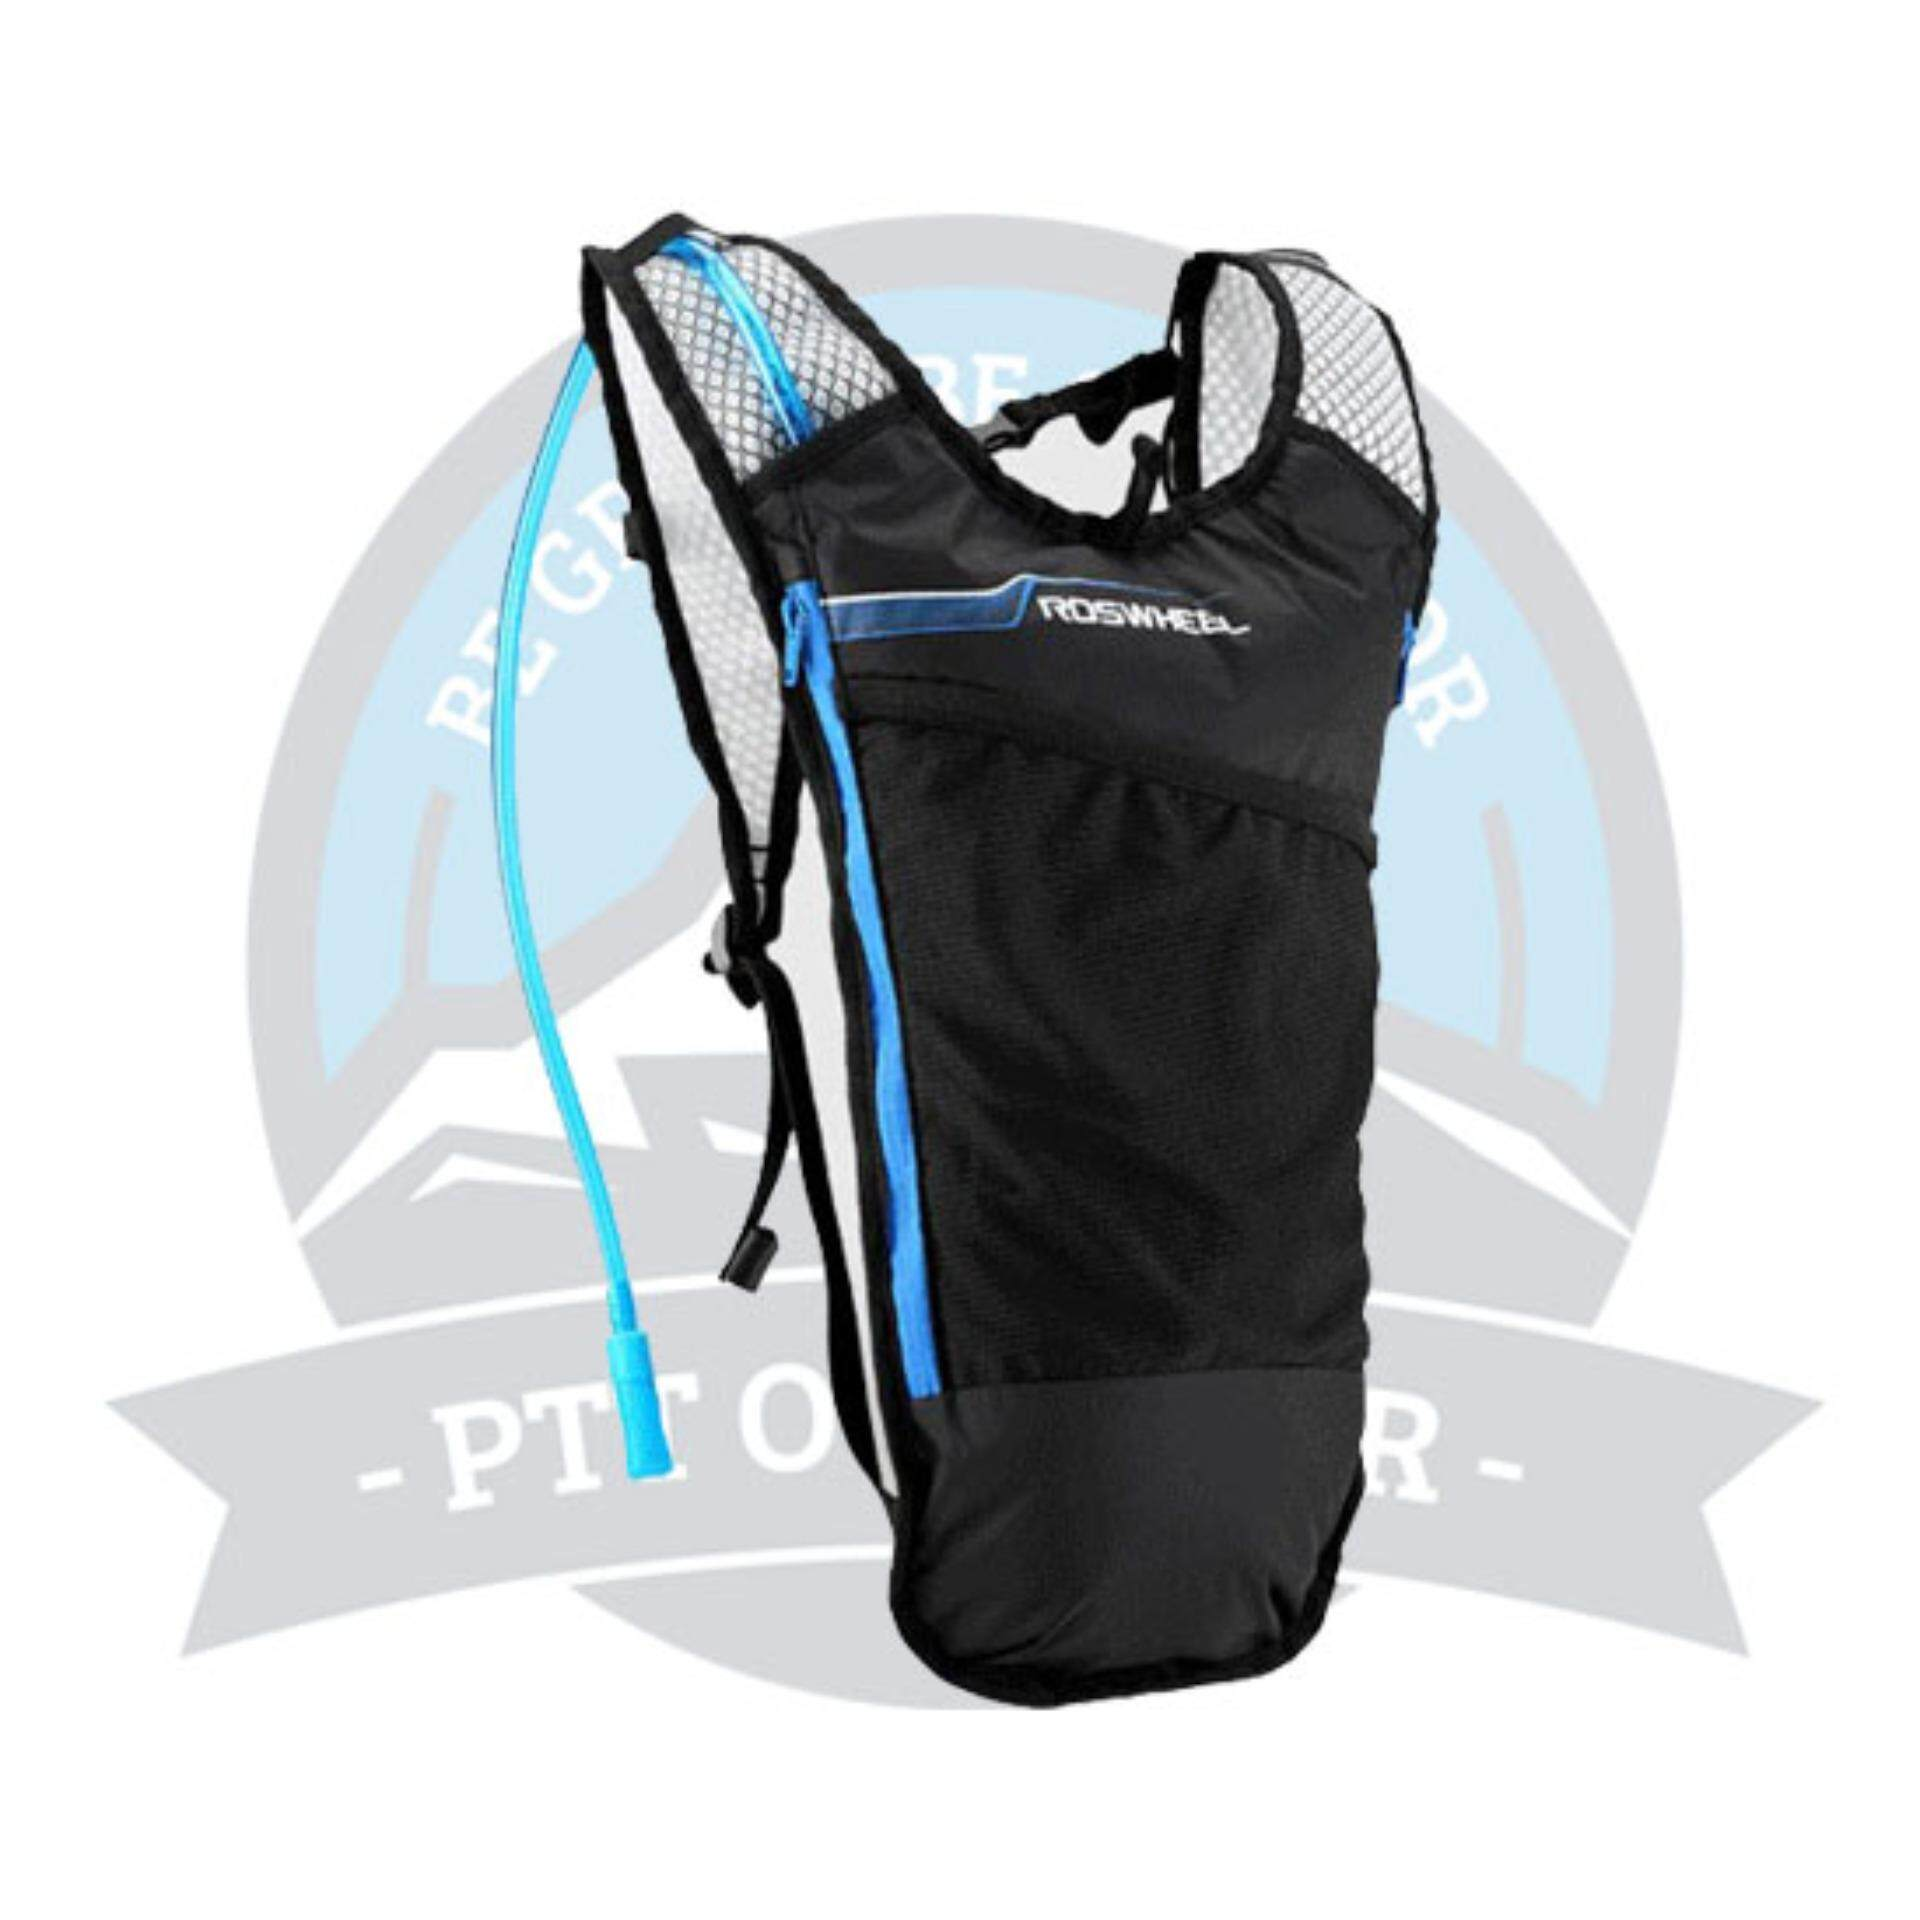 [FREE DELIVERY] ROSWHEEL HYDRATION BACKPACK HYDRATION BAG + FREE 2L WATER BLADDER - BLUE